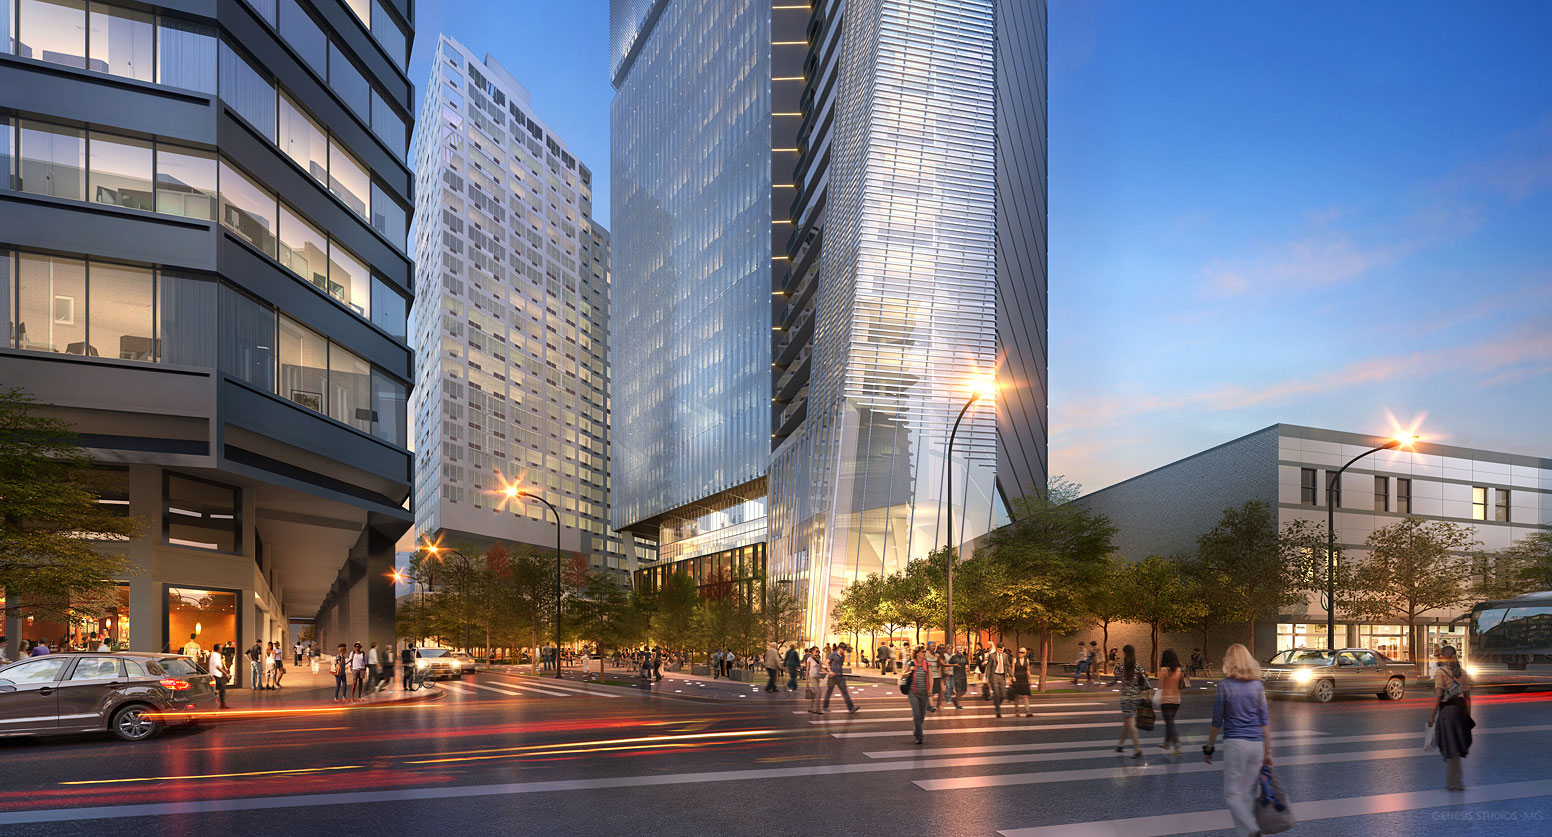 616023 Digital Photorealistic Architectural Renderings of Fulton Tower Street View at Dusk for Zoning & Code Consulting Group